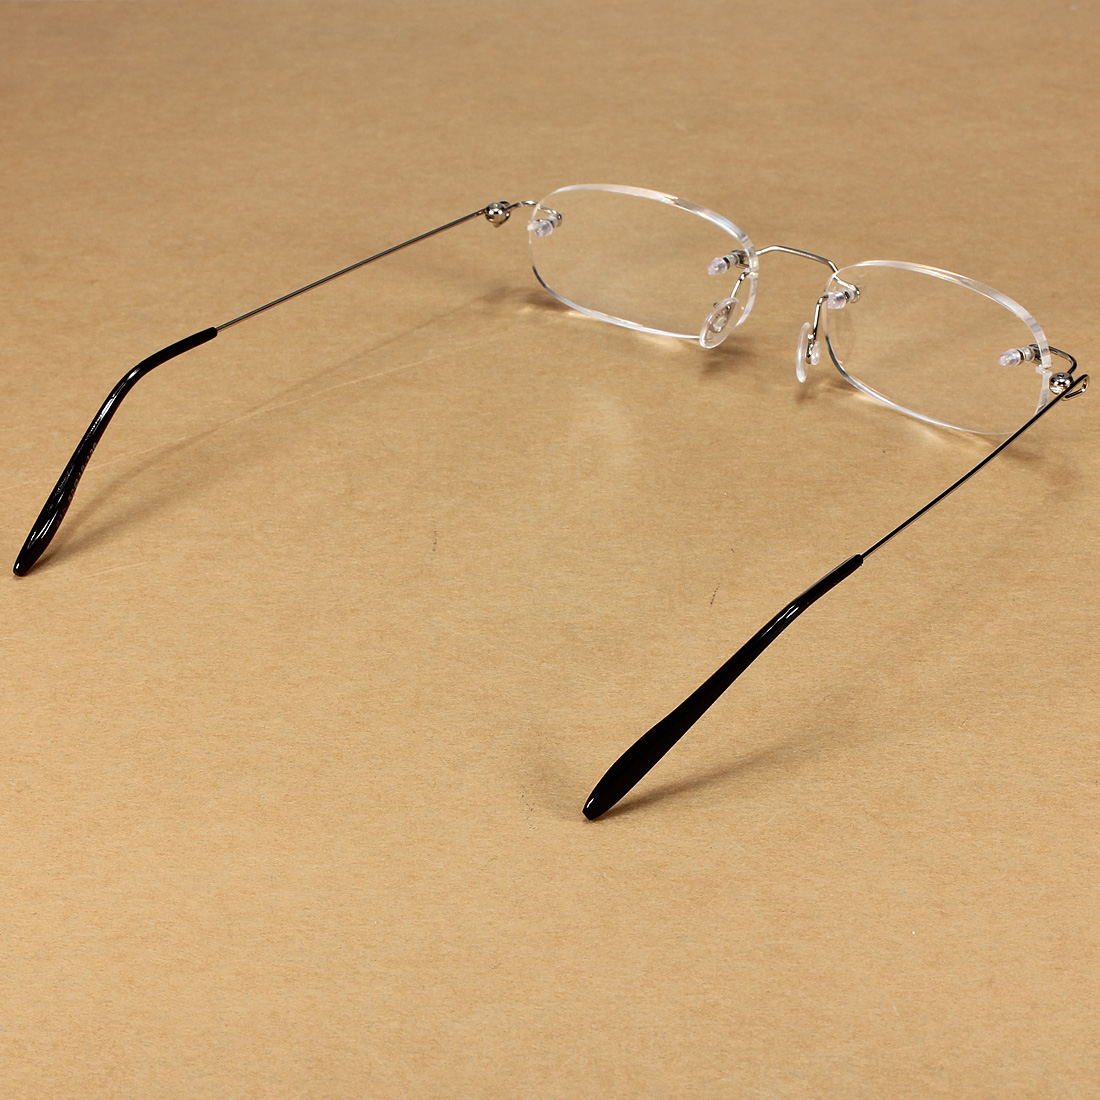 Rimless Glasses With Clear Bridge : Super Light Clear Rimless Reading Glasses With Carrying ...